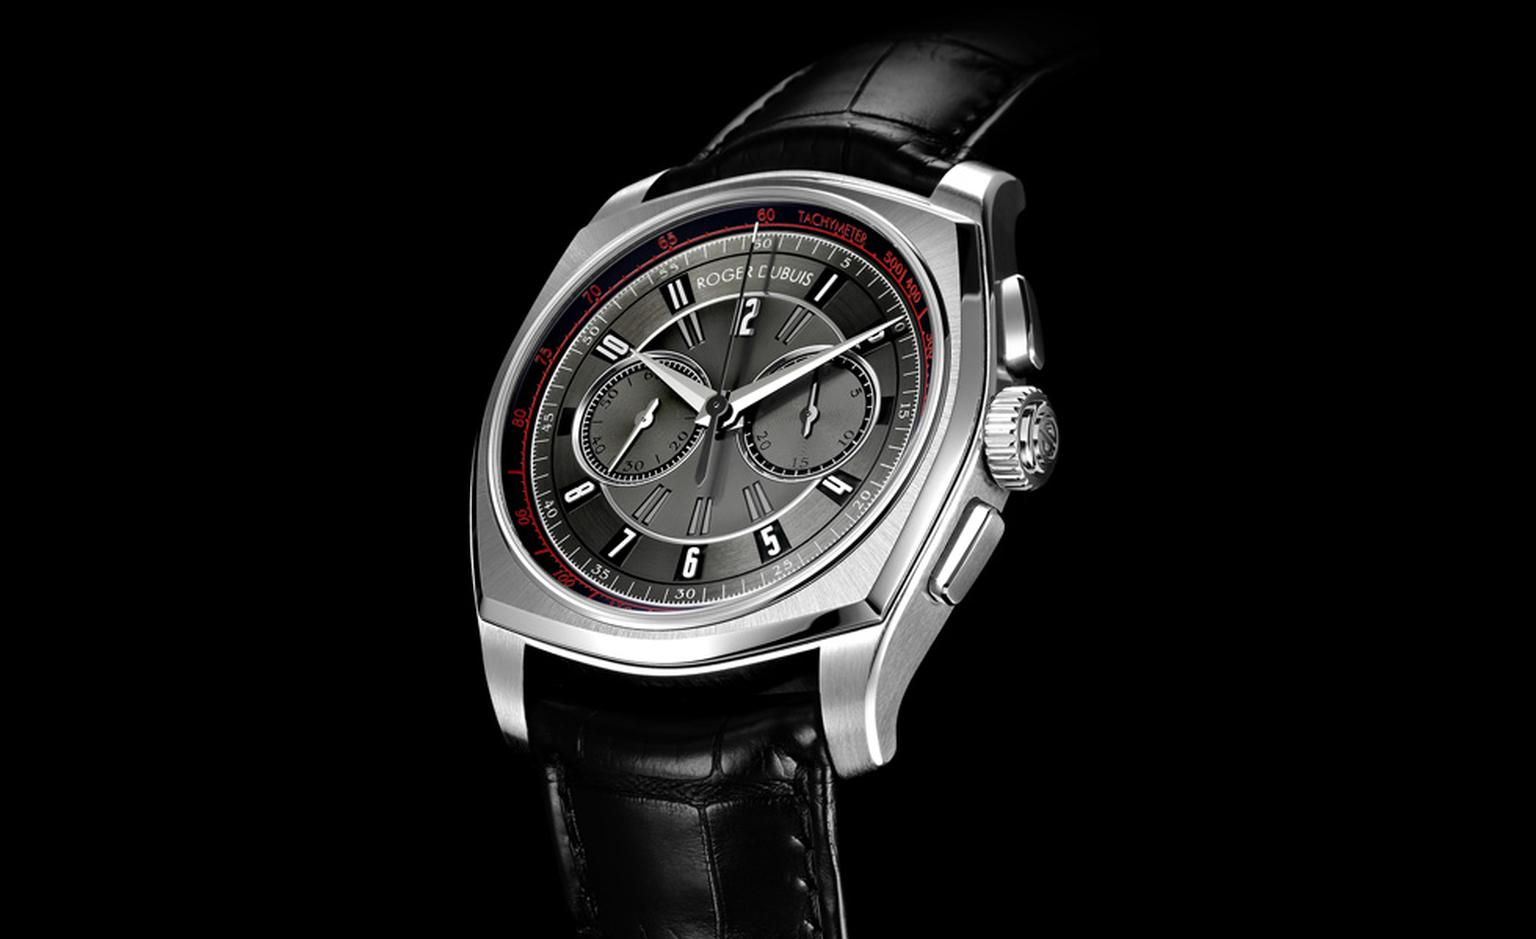 Roger Dubuis new Monegasque Chronograph will appeal to casino high rollers